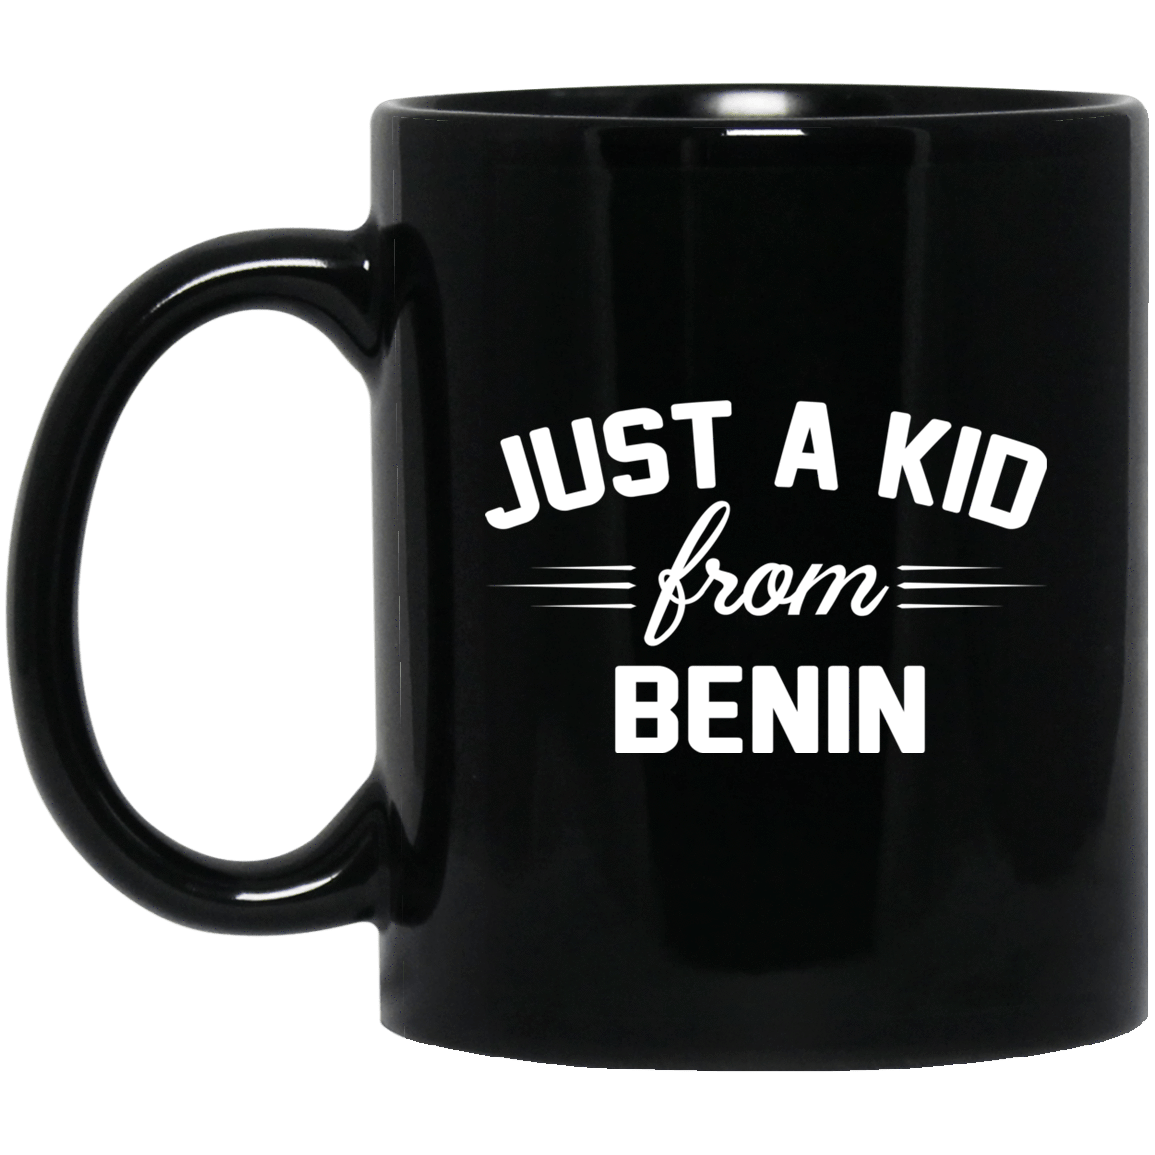 Just A Kid Store | Benin Mug 1065-10181-72111299-49307 - Tee Ript